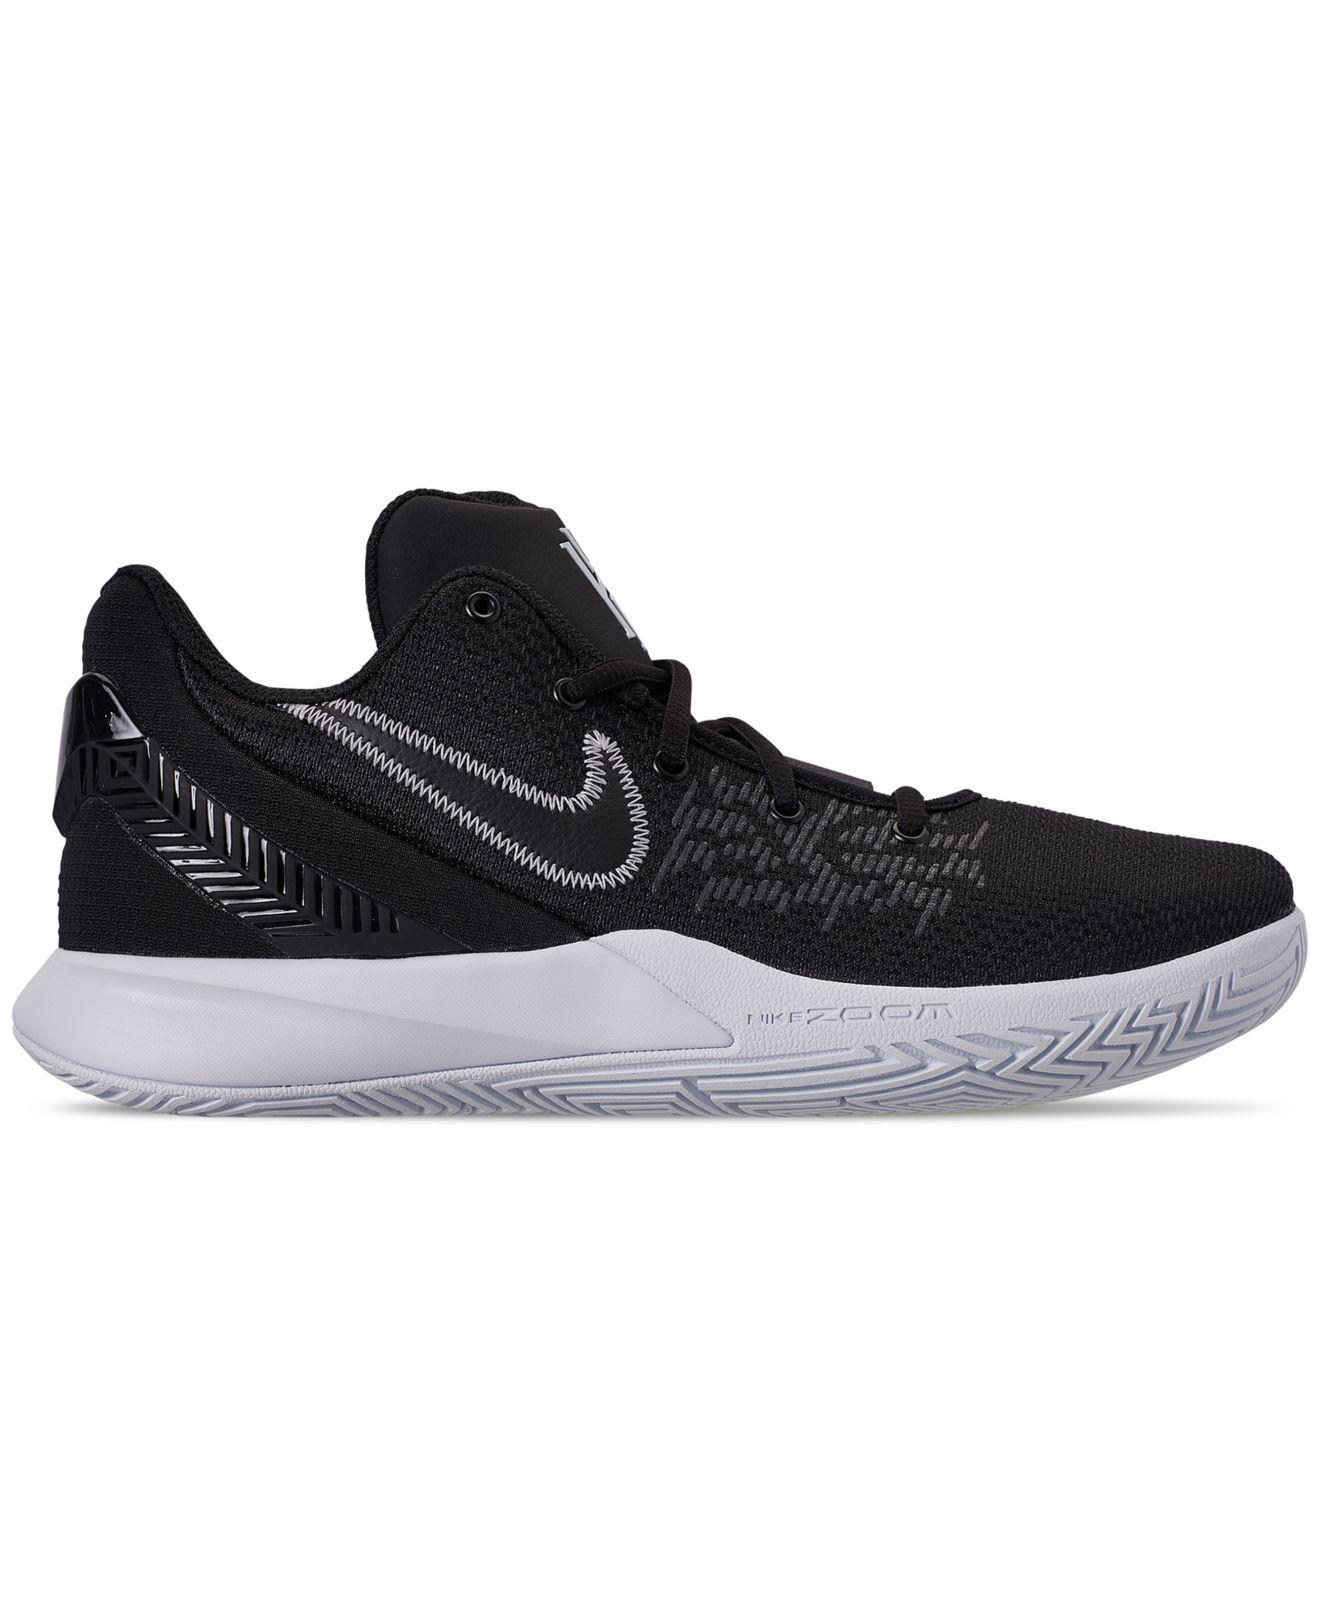 3a713a955e5 Nike Kyrie Flytrap Ii Basketball Sneakers From Finish Line in Black for Men  - Lyst